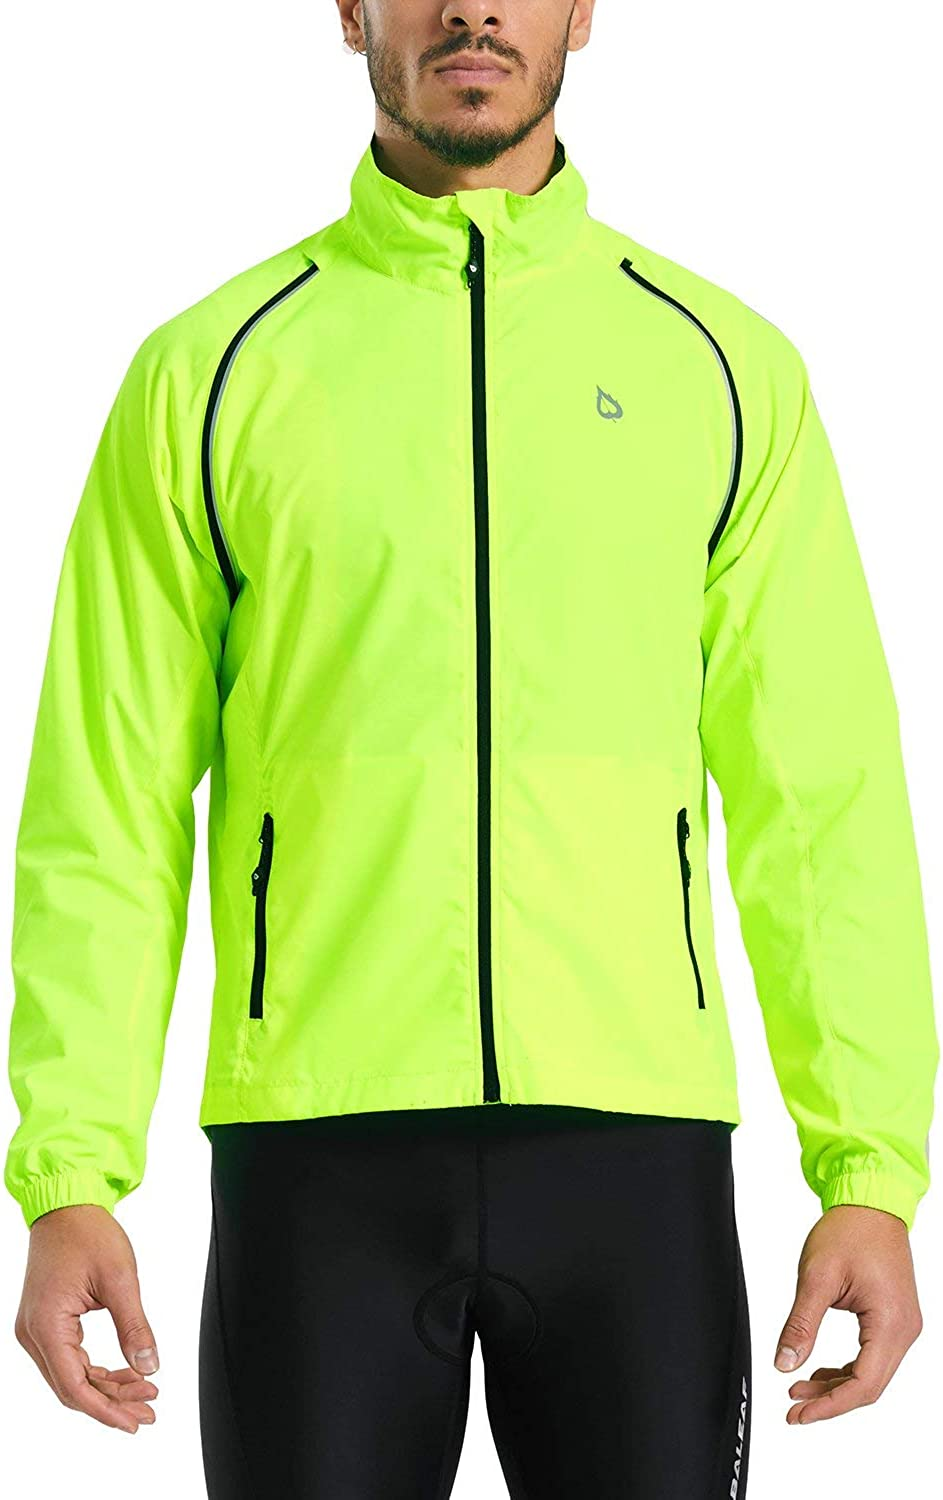 BALEAF Men's Cycling Jacket Vest Windproof Water-Resistant Coat Breathable Running Outdoor Sportswear : Clothing